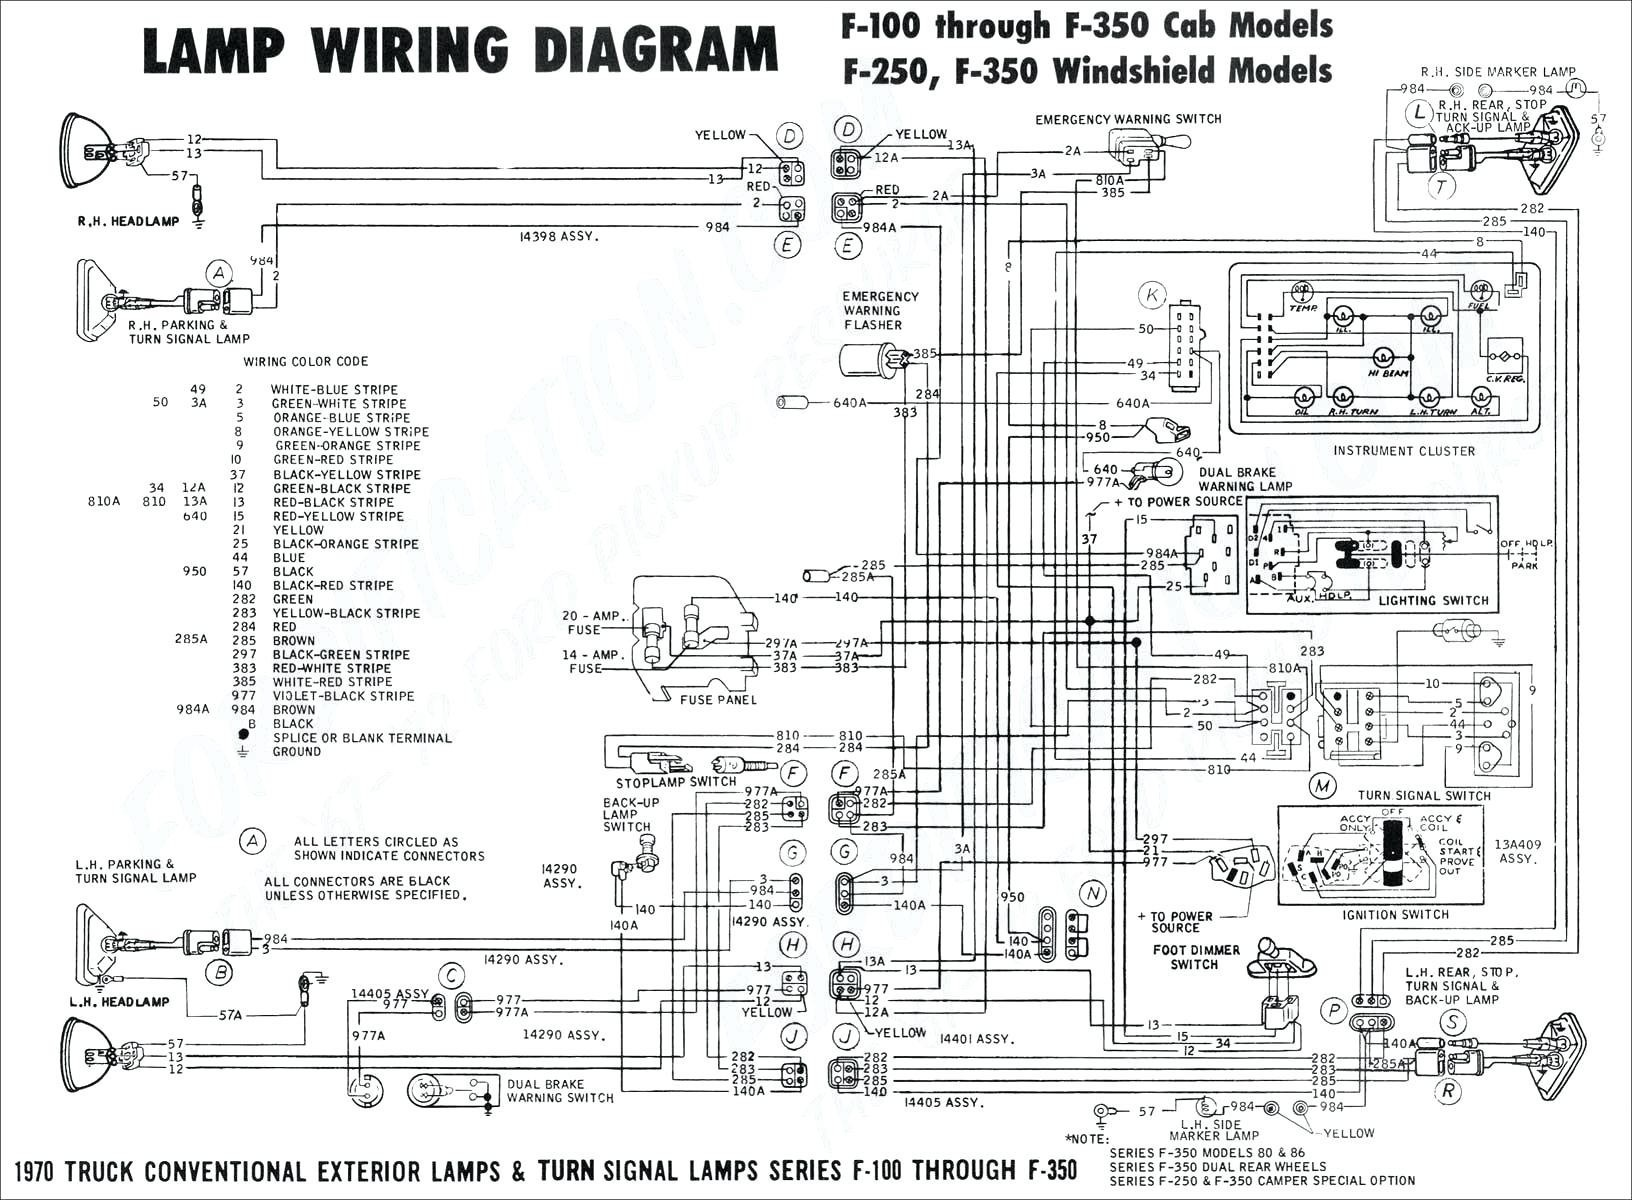 Ford F150 Tail Light Wiring Diagram Wiring Diagram for Automotive Lights New Stop Turn Tail Light Wiring Of Ford F150 Tail Light Wiring Diagram 1973 1979 ford Truck Wiring Diagrams & Schematics fordification